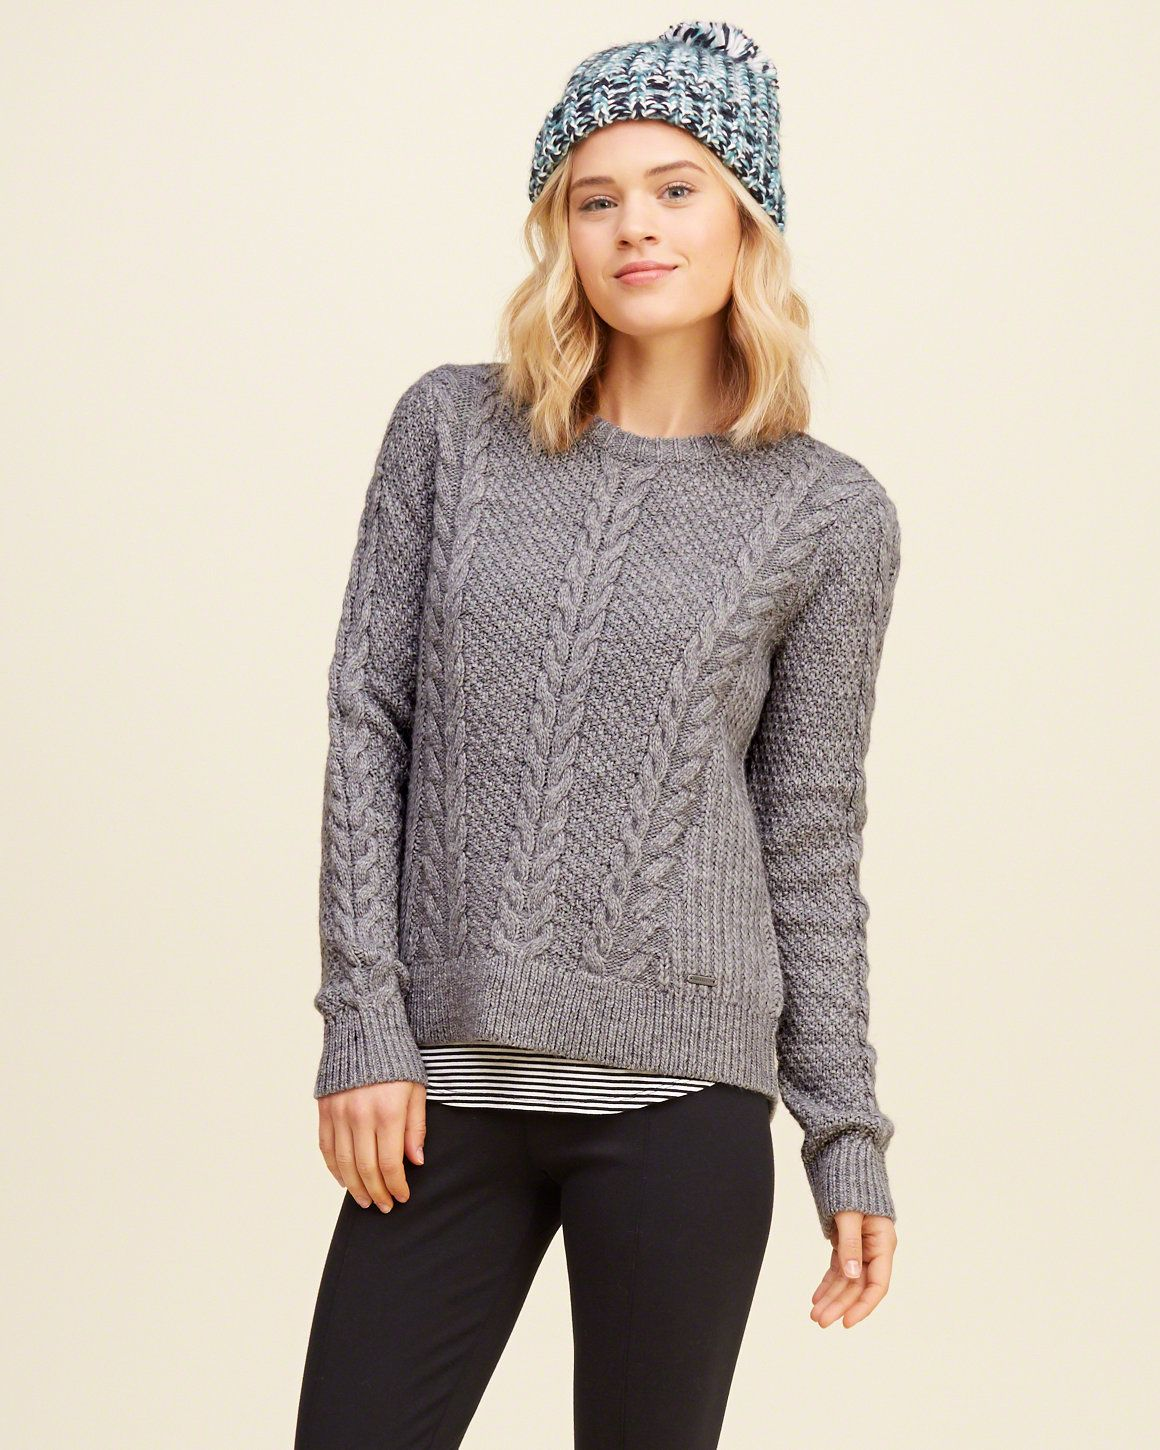 Crew Girls Pattern Cable Crafted With Sweater Classic 5F0nB0gqH